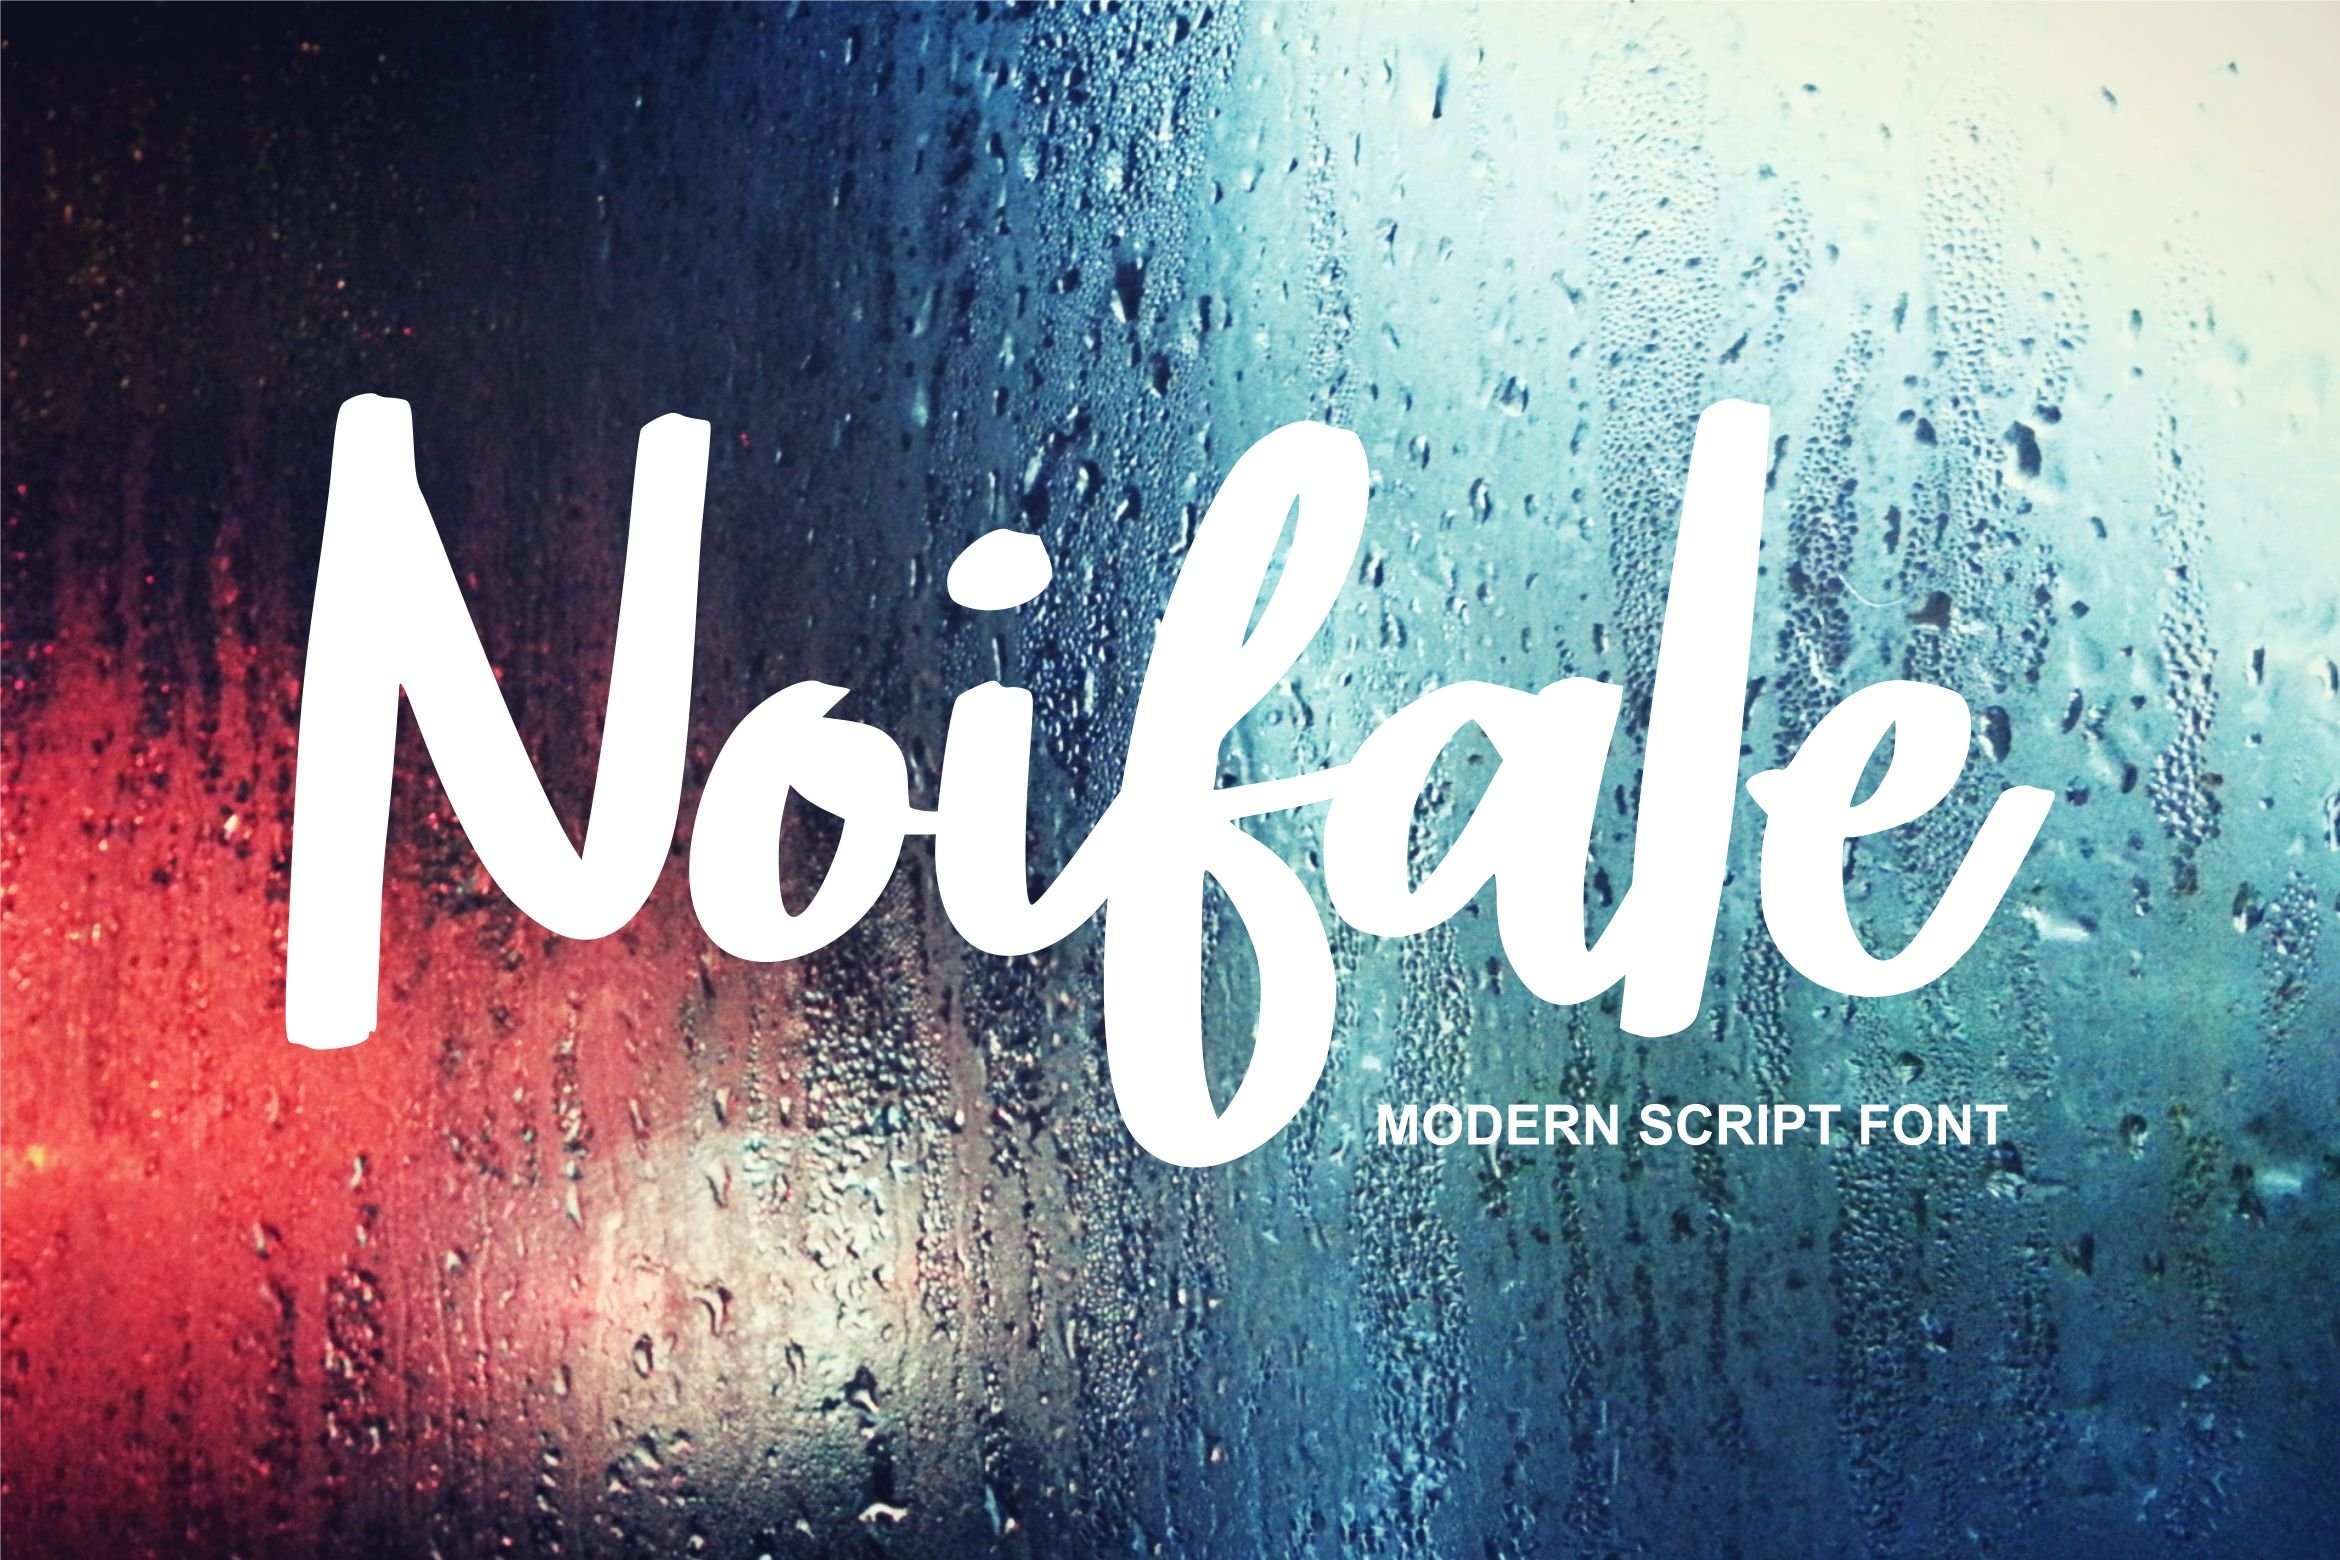 Noifale   Modern Script Font example image 1